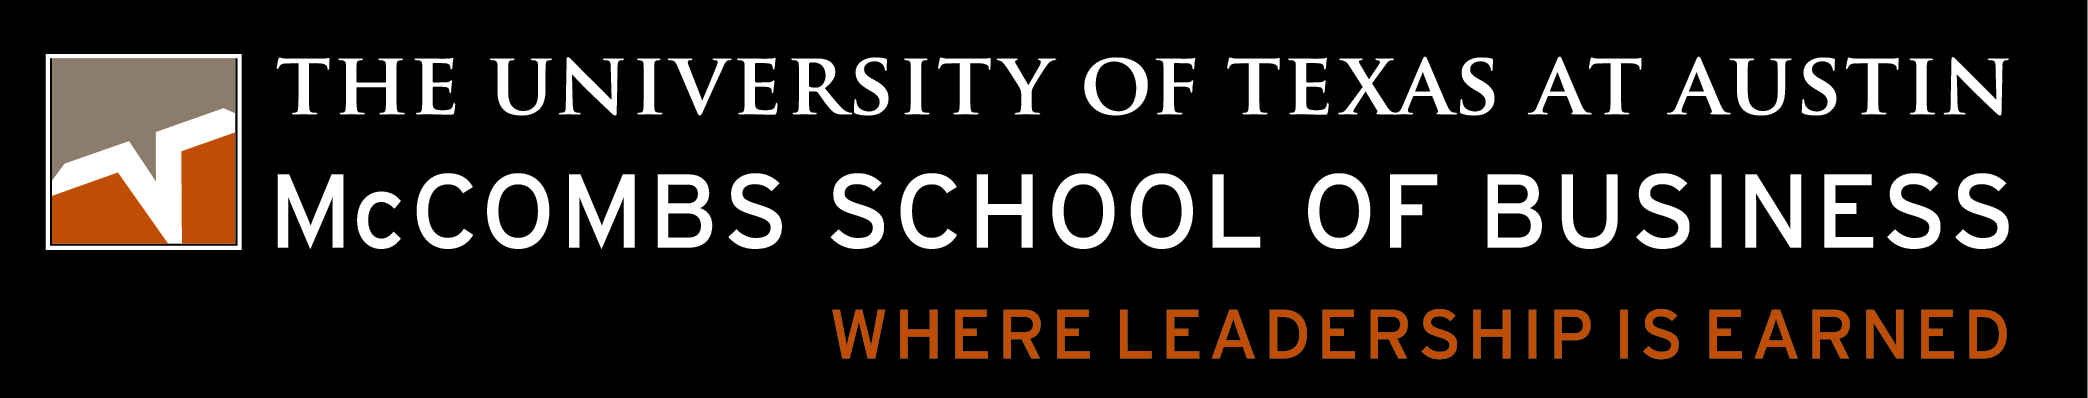 UT Business school